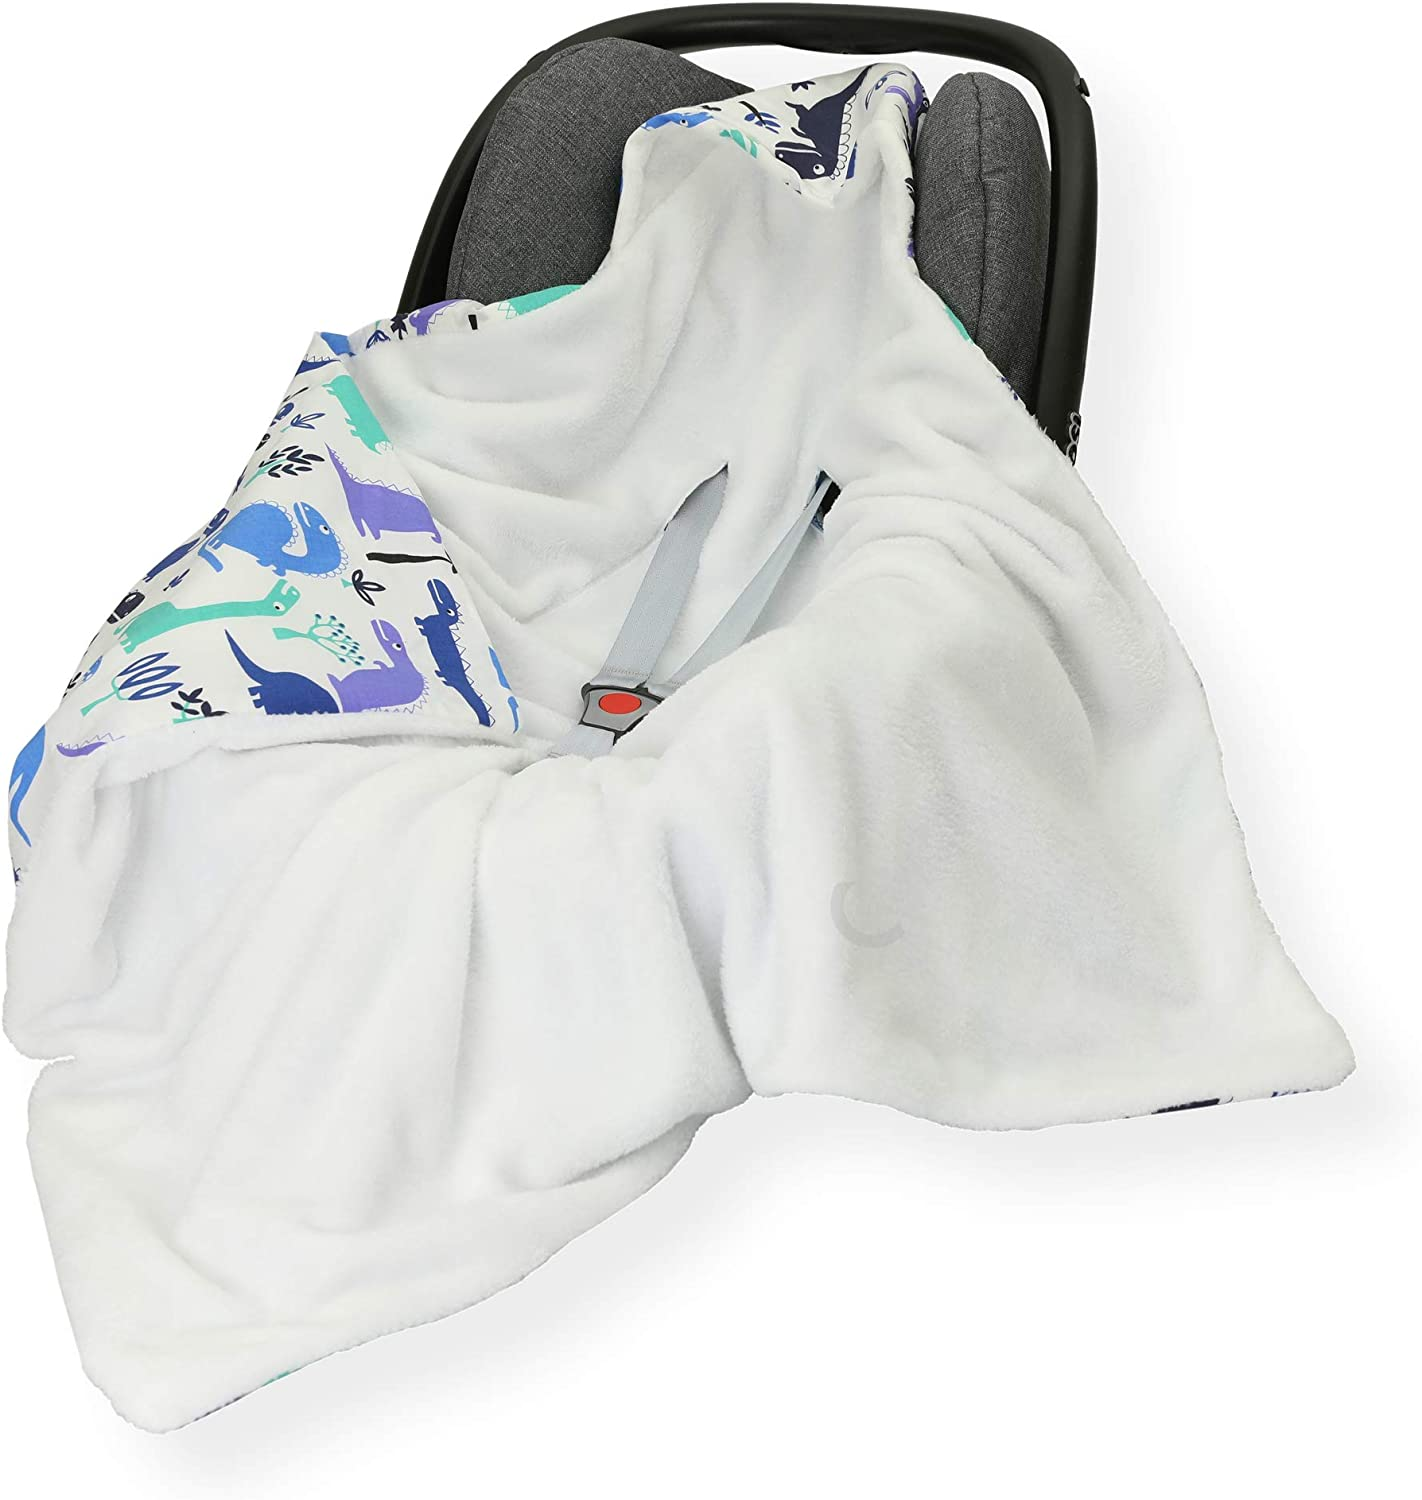 Sided 100 x 100cm Hooded Blanket with SEAT Belt Holes CAR SEAT Blanket//Cover//COSYTOES Peacock//White FOOTMUFF Double